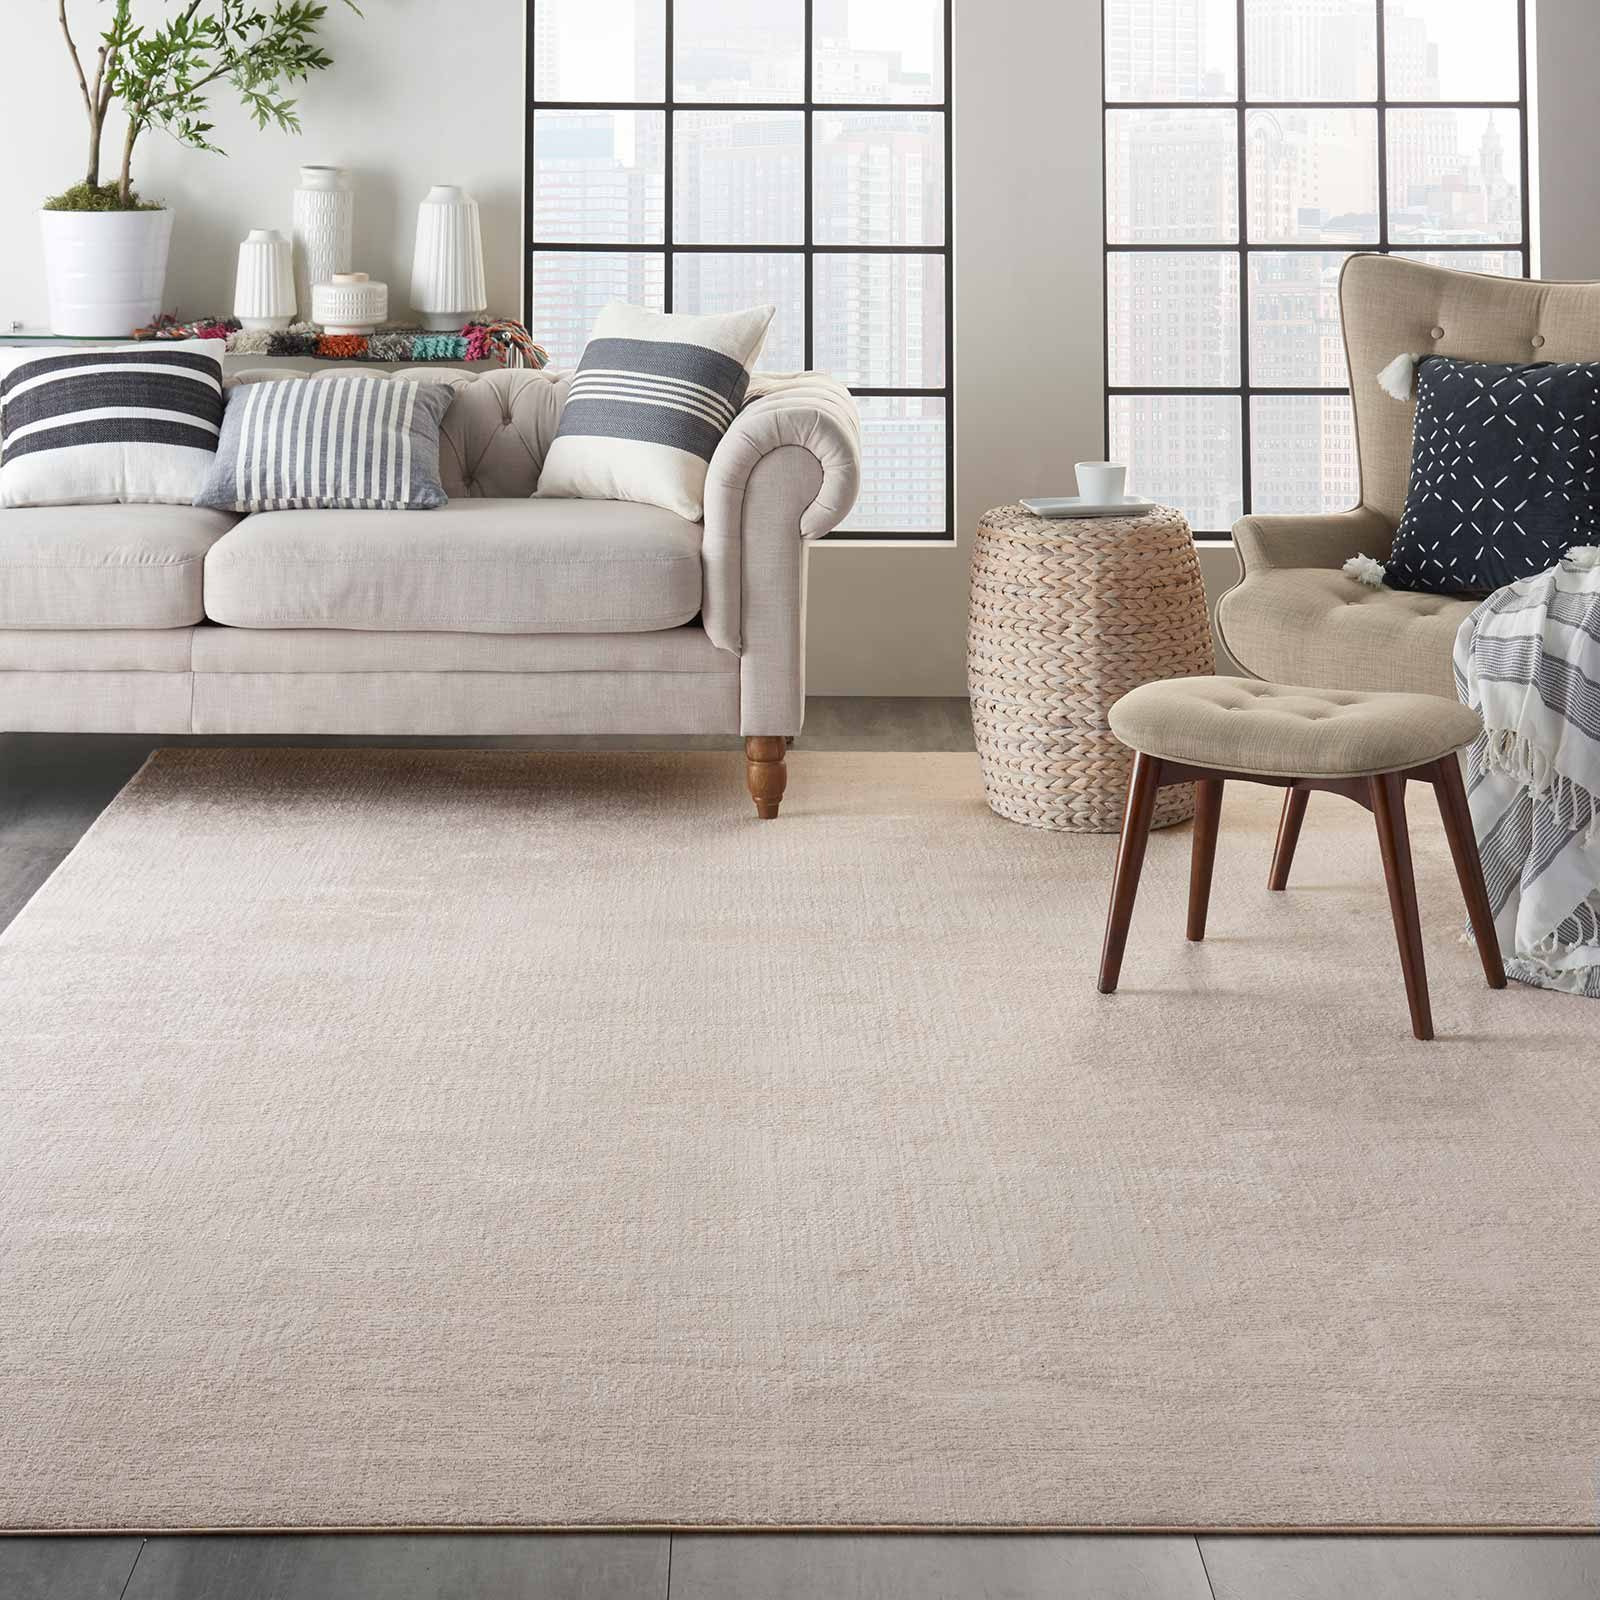 Nourison rug Silky Textures SLY01 IVORY GREY 9x13 099446709776 interior 1